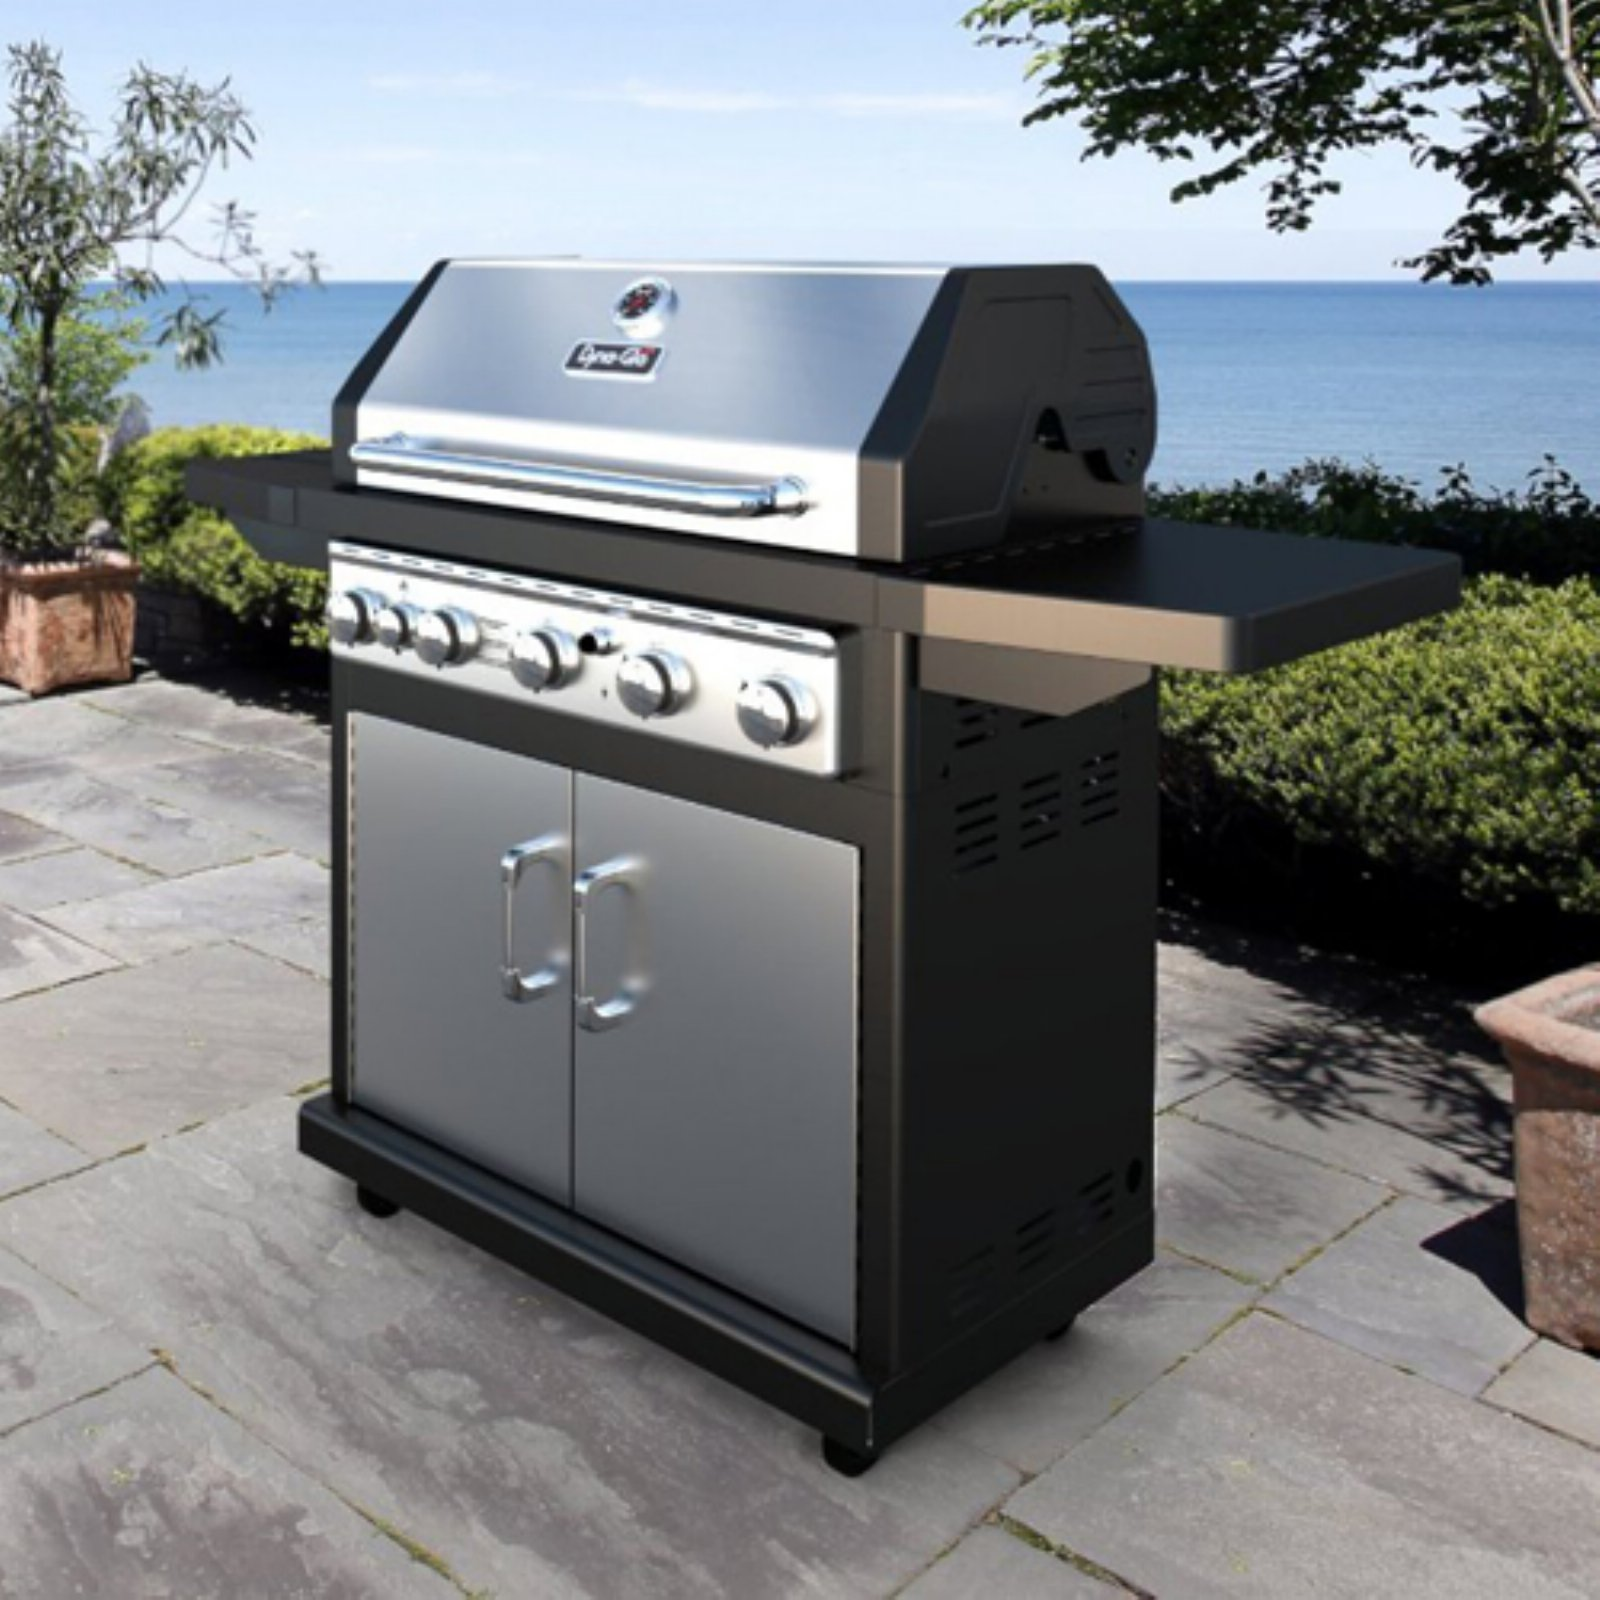 dyna glo 5 burner gas grill with side burner walmart com